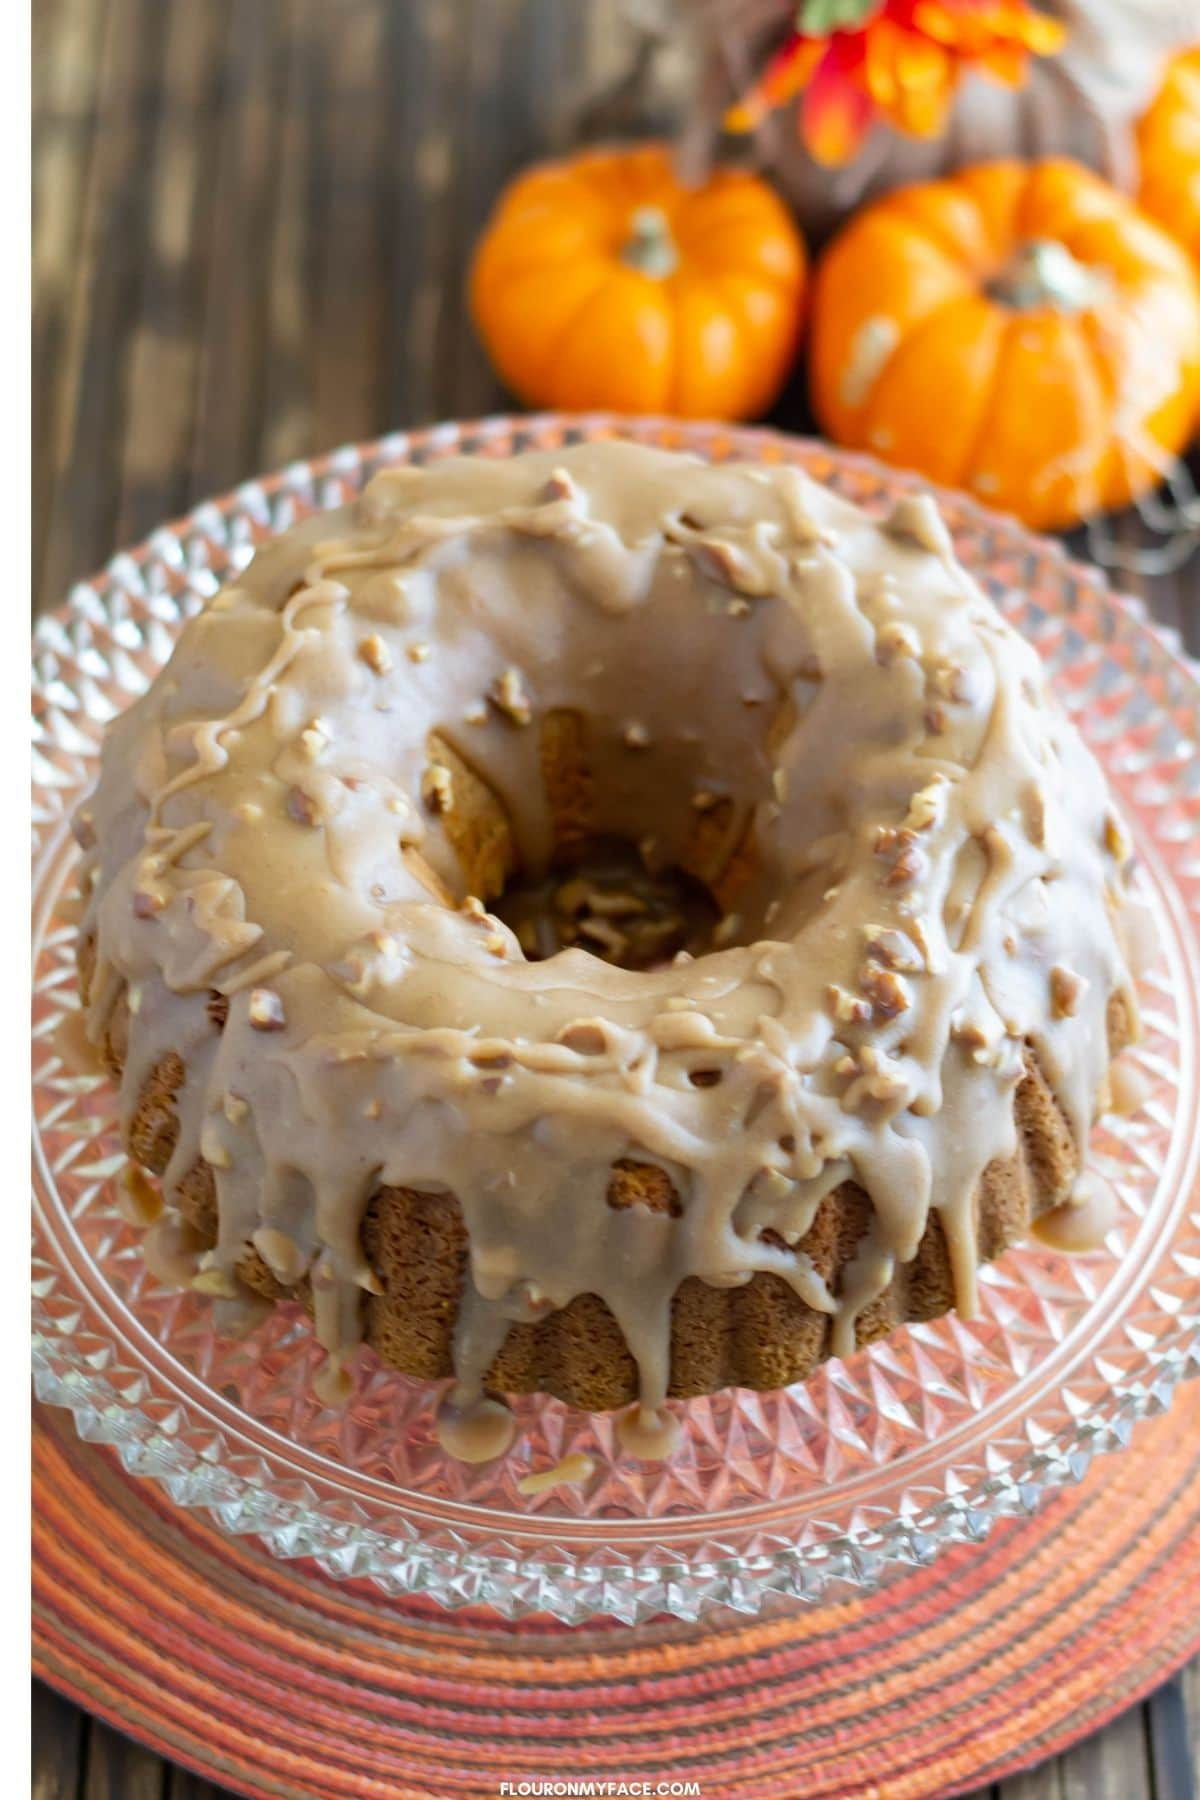 A pecan spice bundt cake on a glass cake stand before cutting.